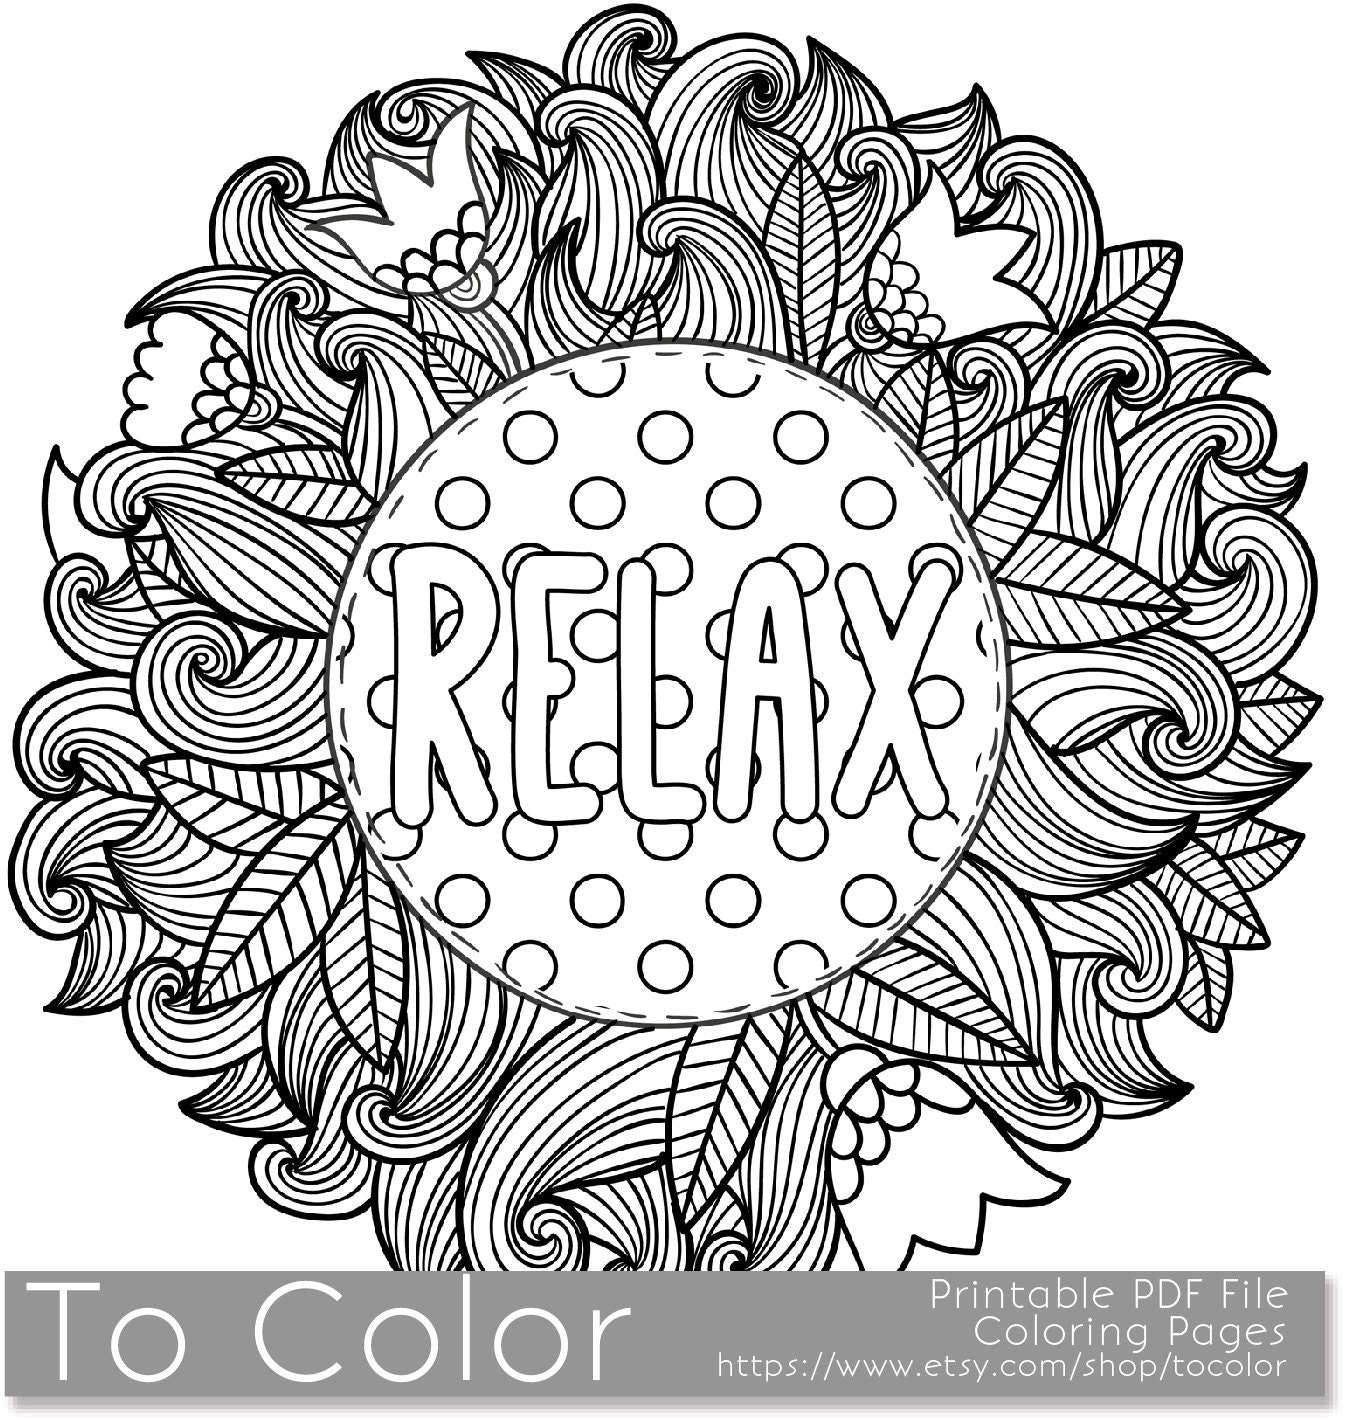 Printable Relaxation Colouring Pages : Printable Relax Coloring Page for Adults PDF / JPG Instant